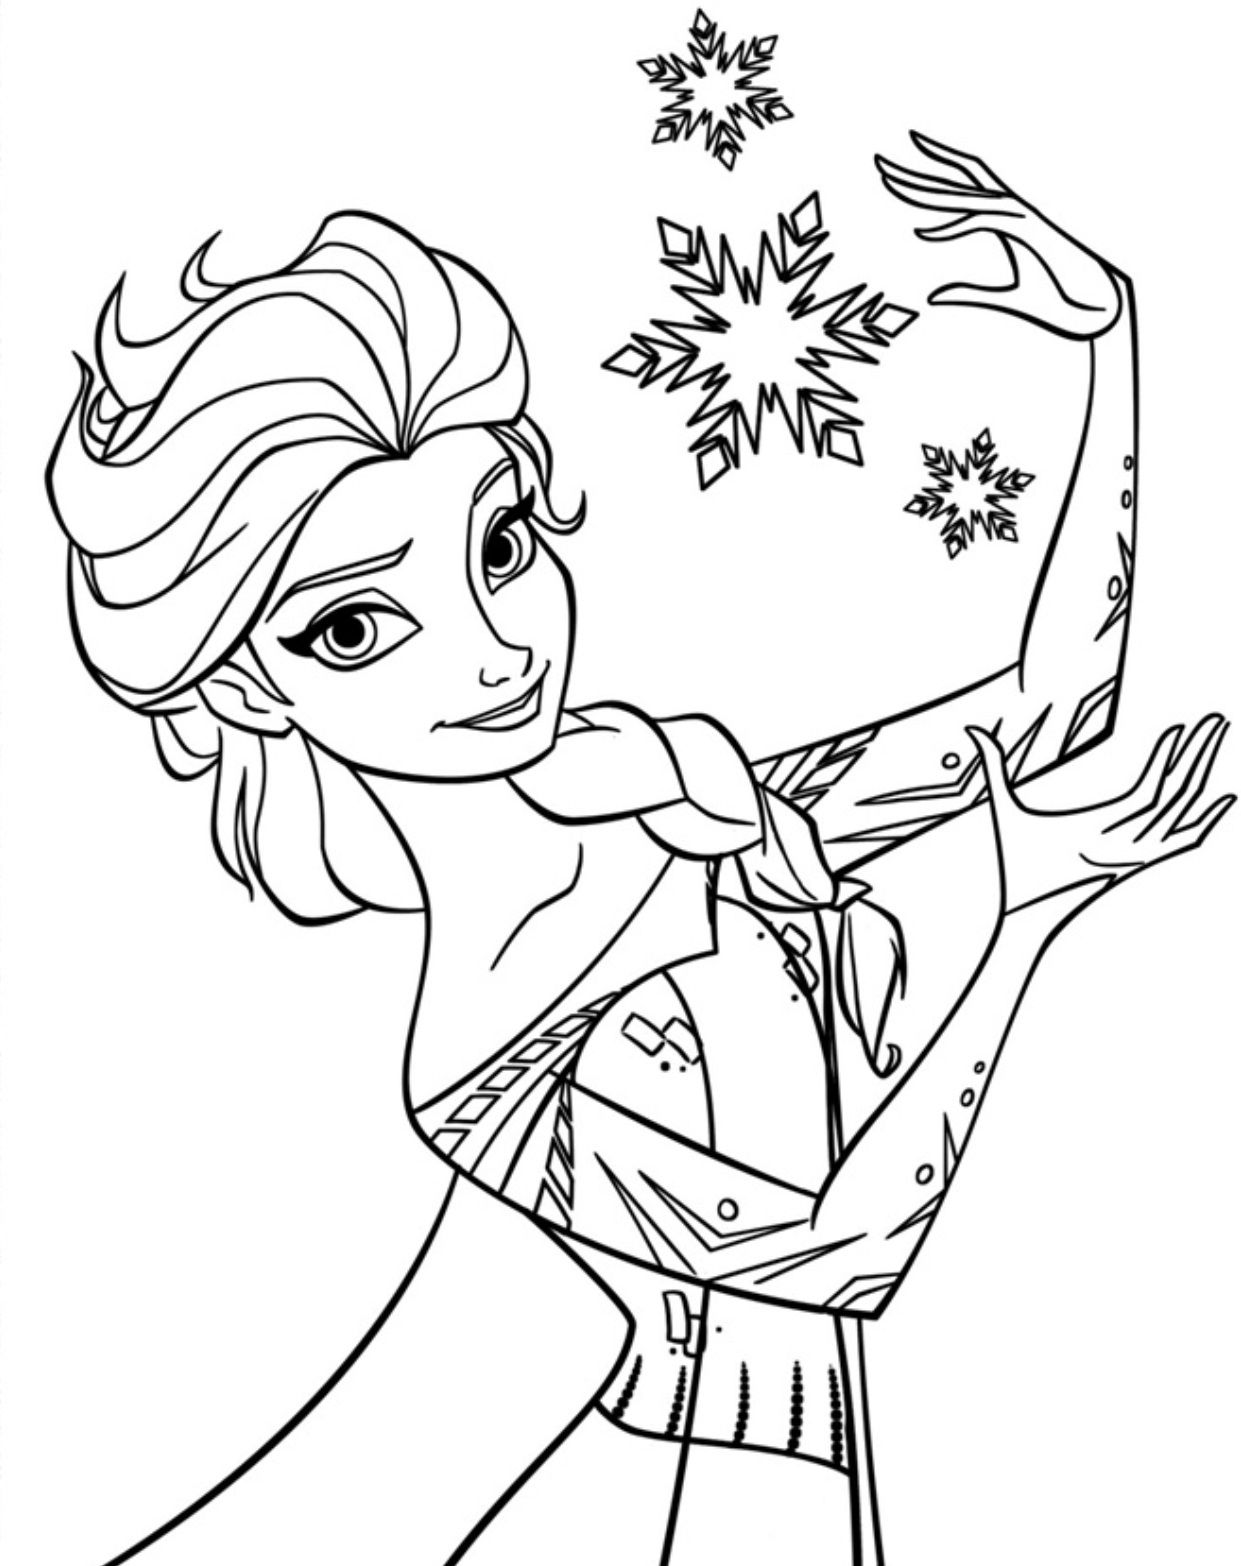 Coloring book printable frozen - Frozen Callering Pages Download And Print Printable Frozen Coloring Page